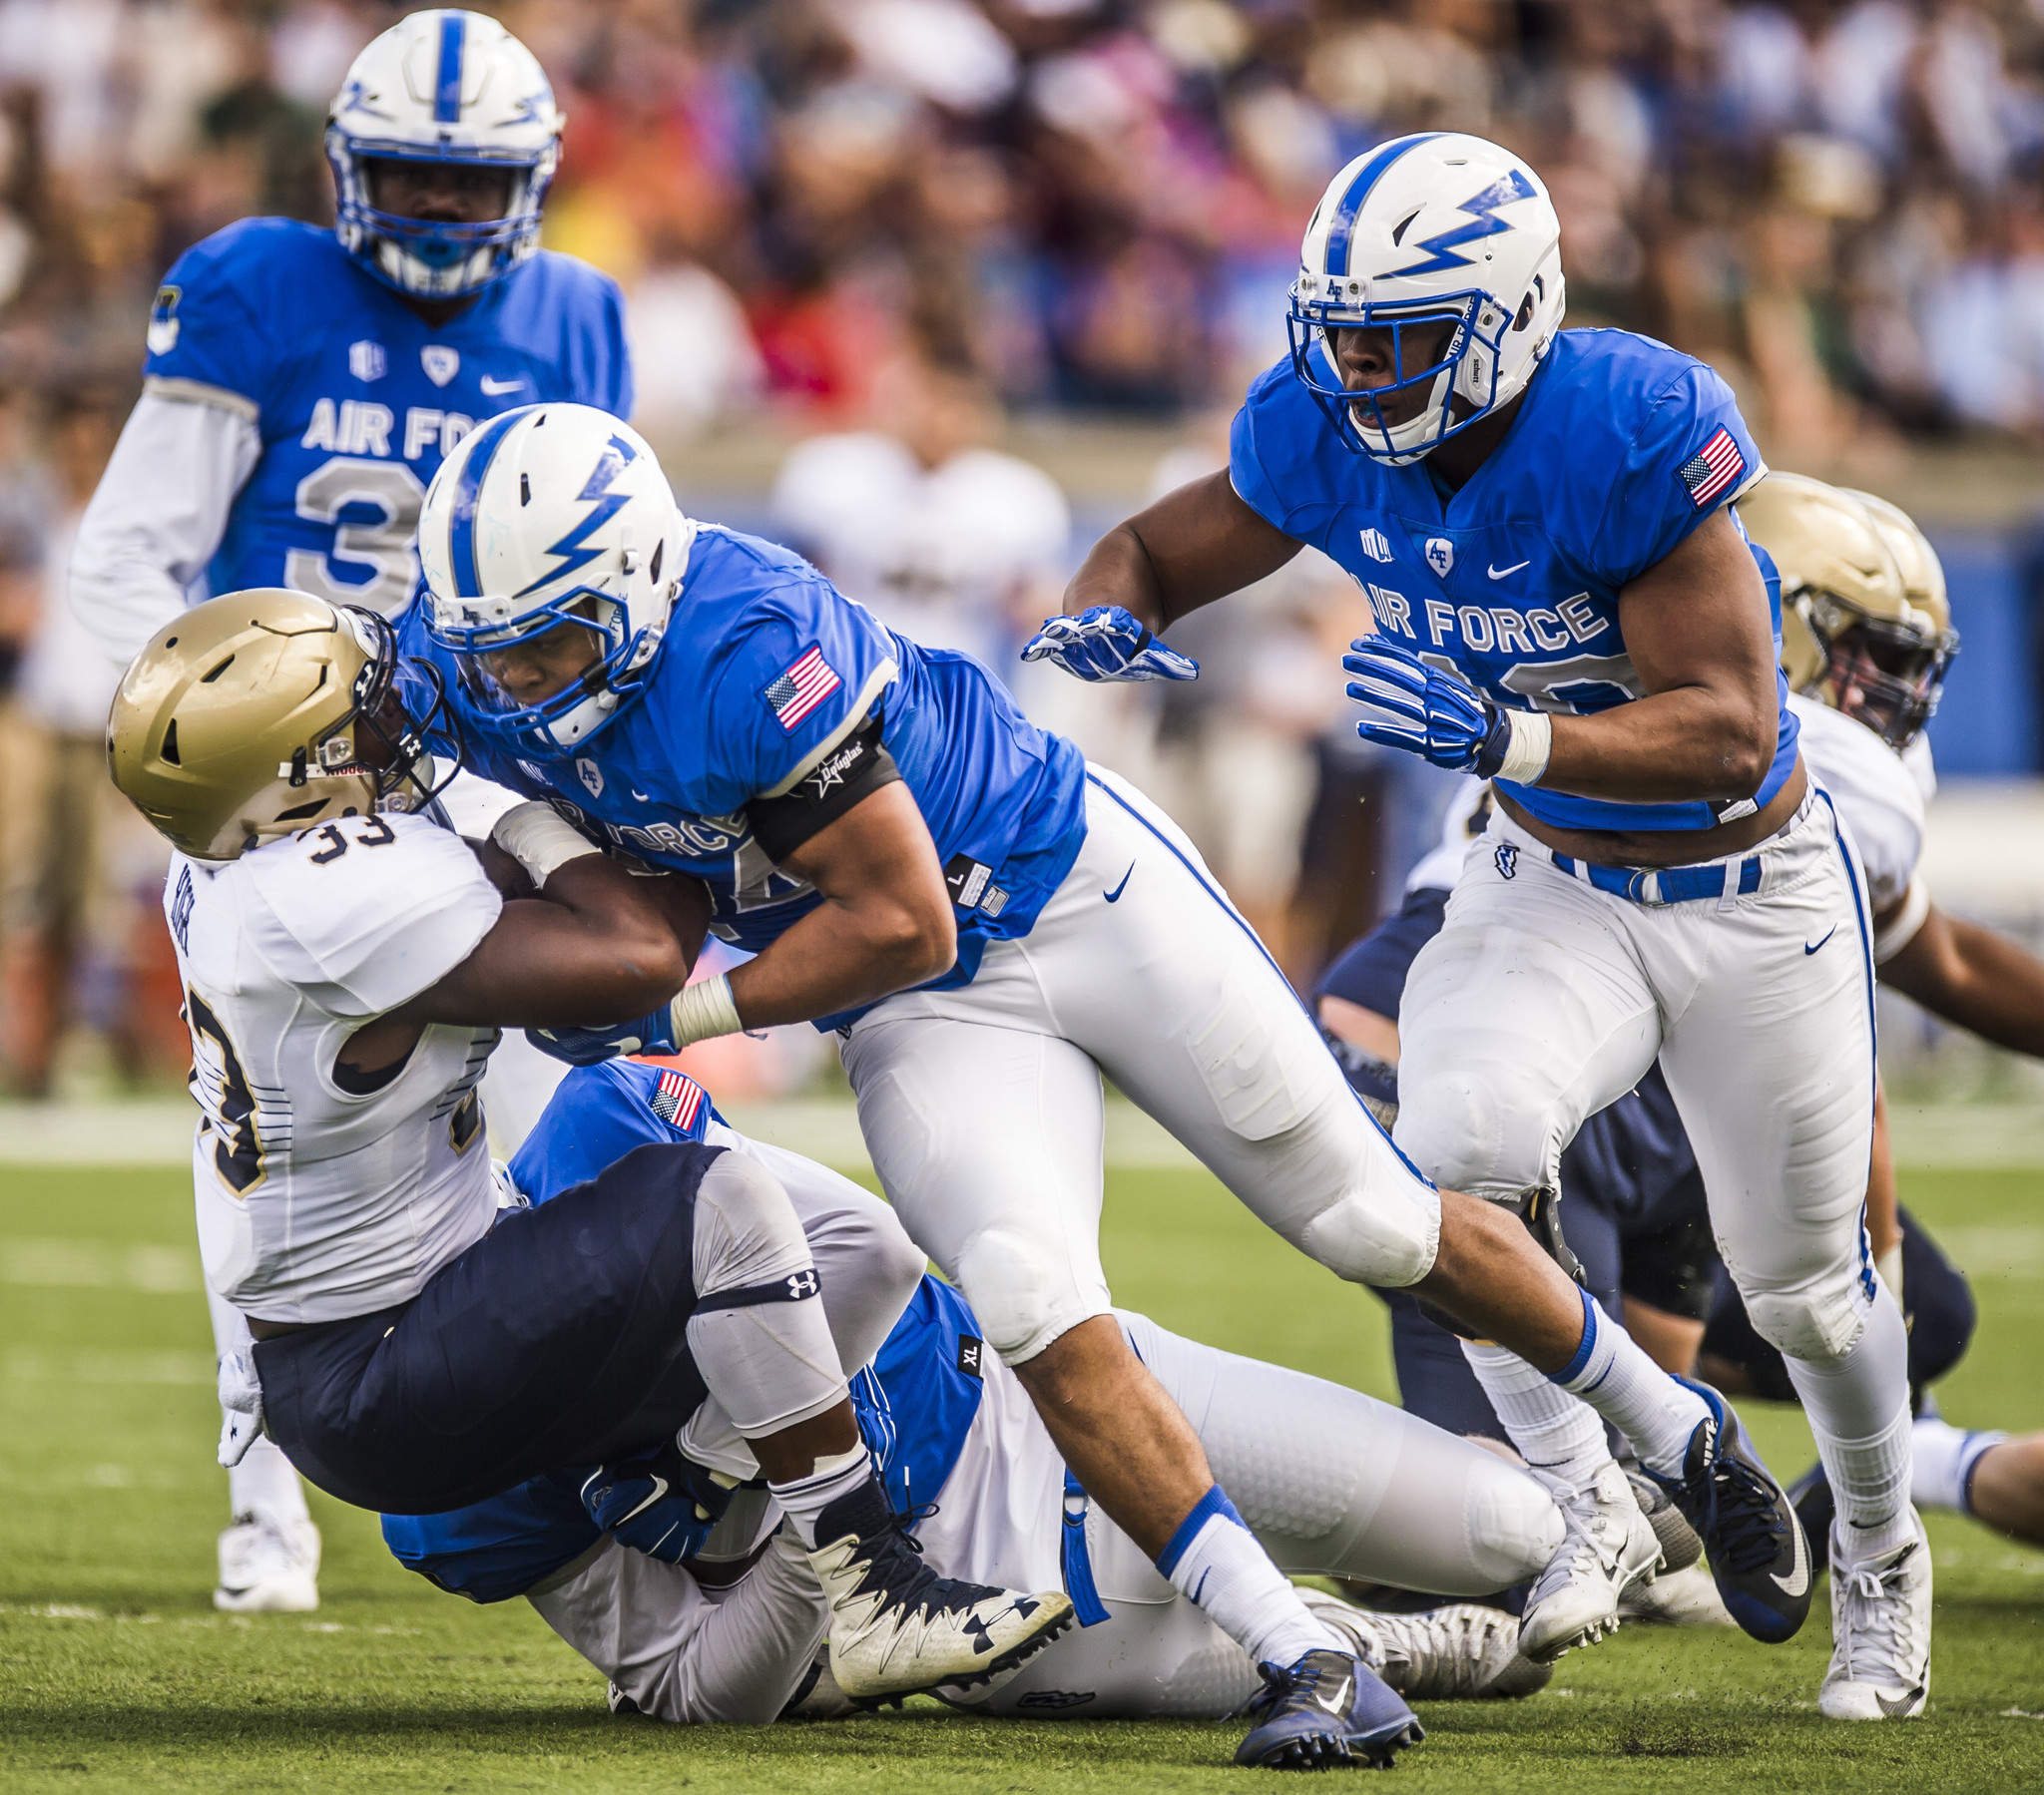 College Football Rankings: Air Force Falcons